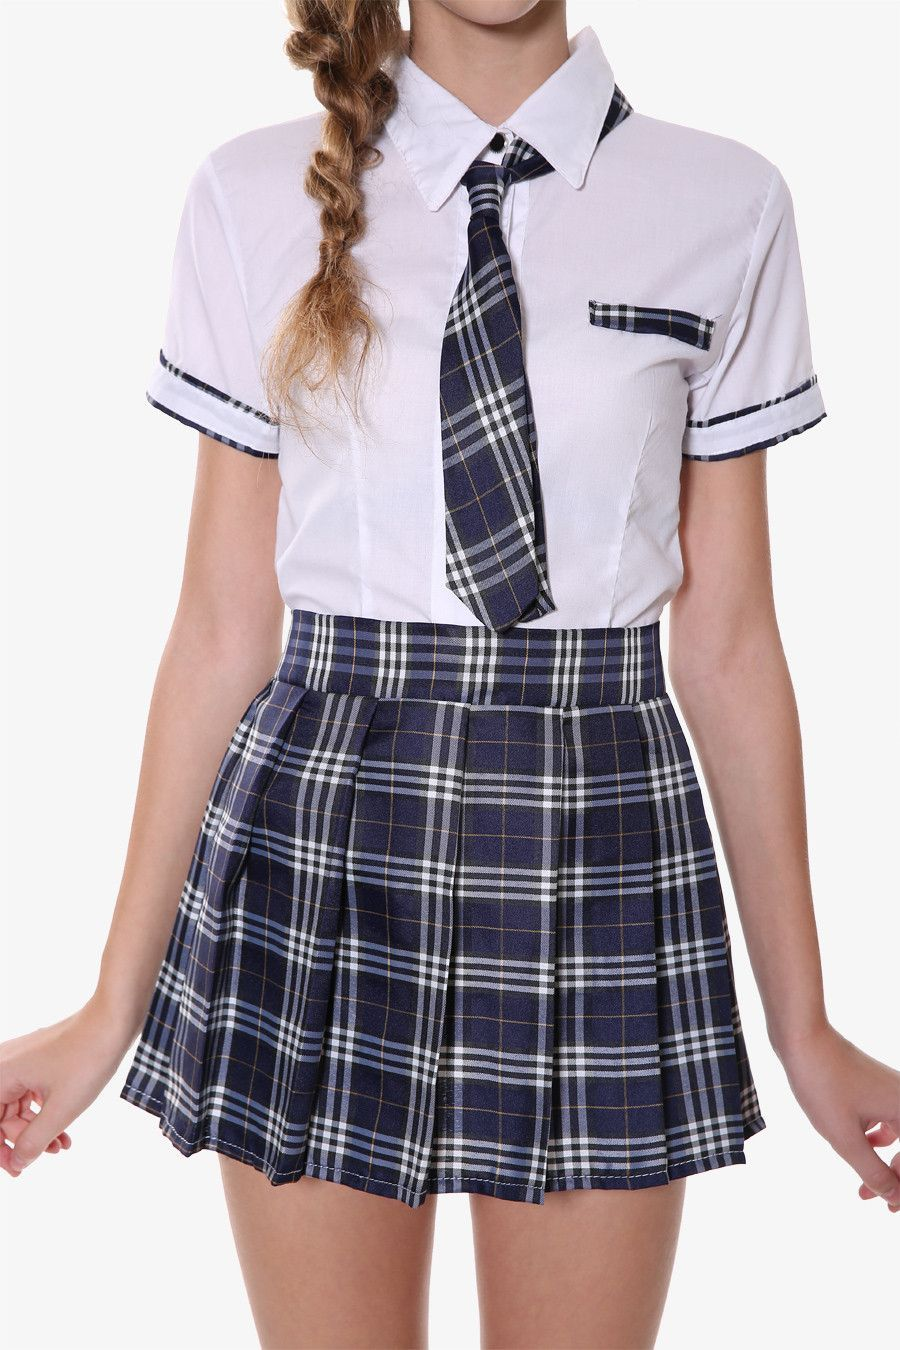 df8161d420c9 This seifuku japanese school uniform set is perfect for the student  inspired by retro culture. The white shirt of this set features ...